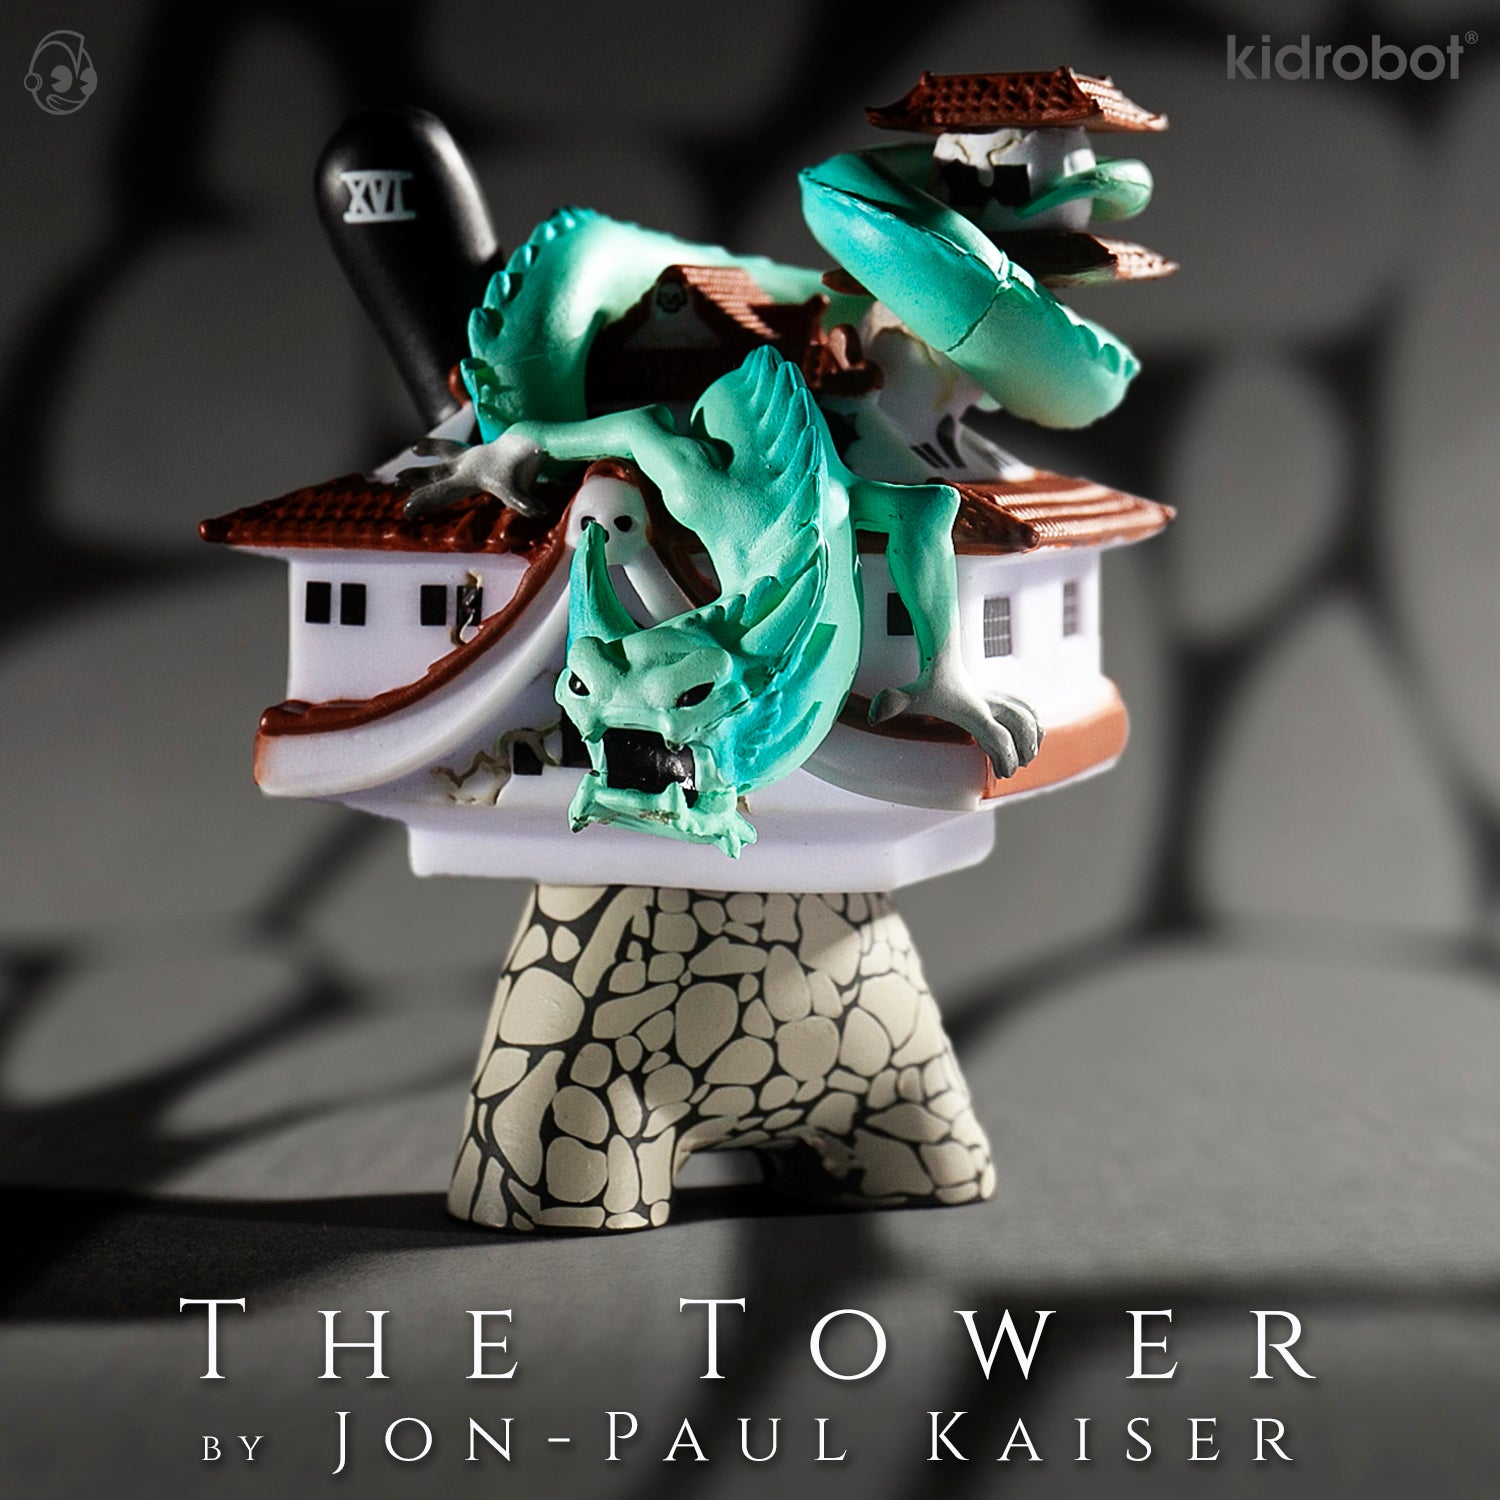 The Tower Dunny by Jon-Paul Kaiser - Arcane Divination The Lost Cards - Kidrobot